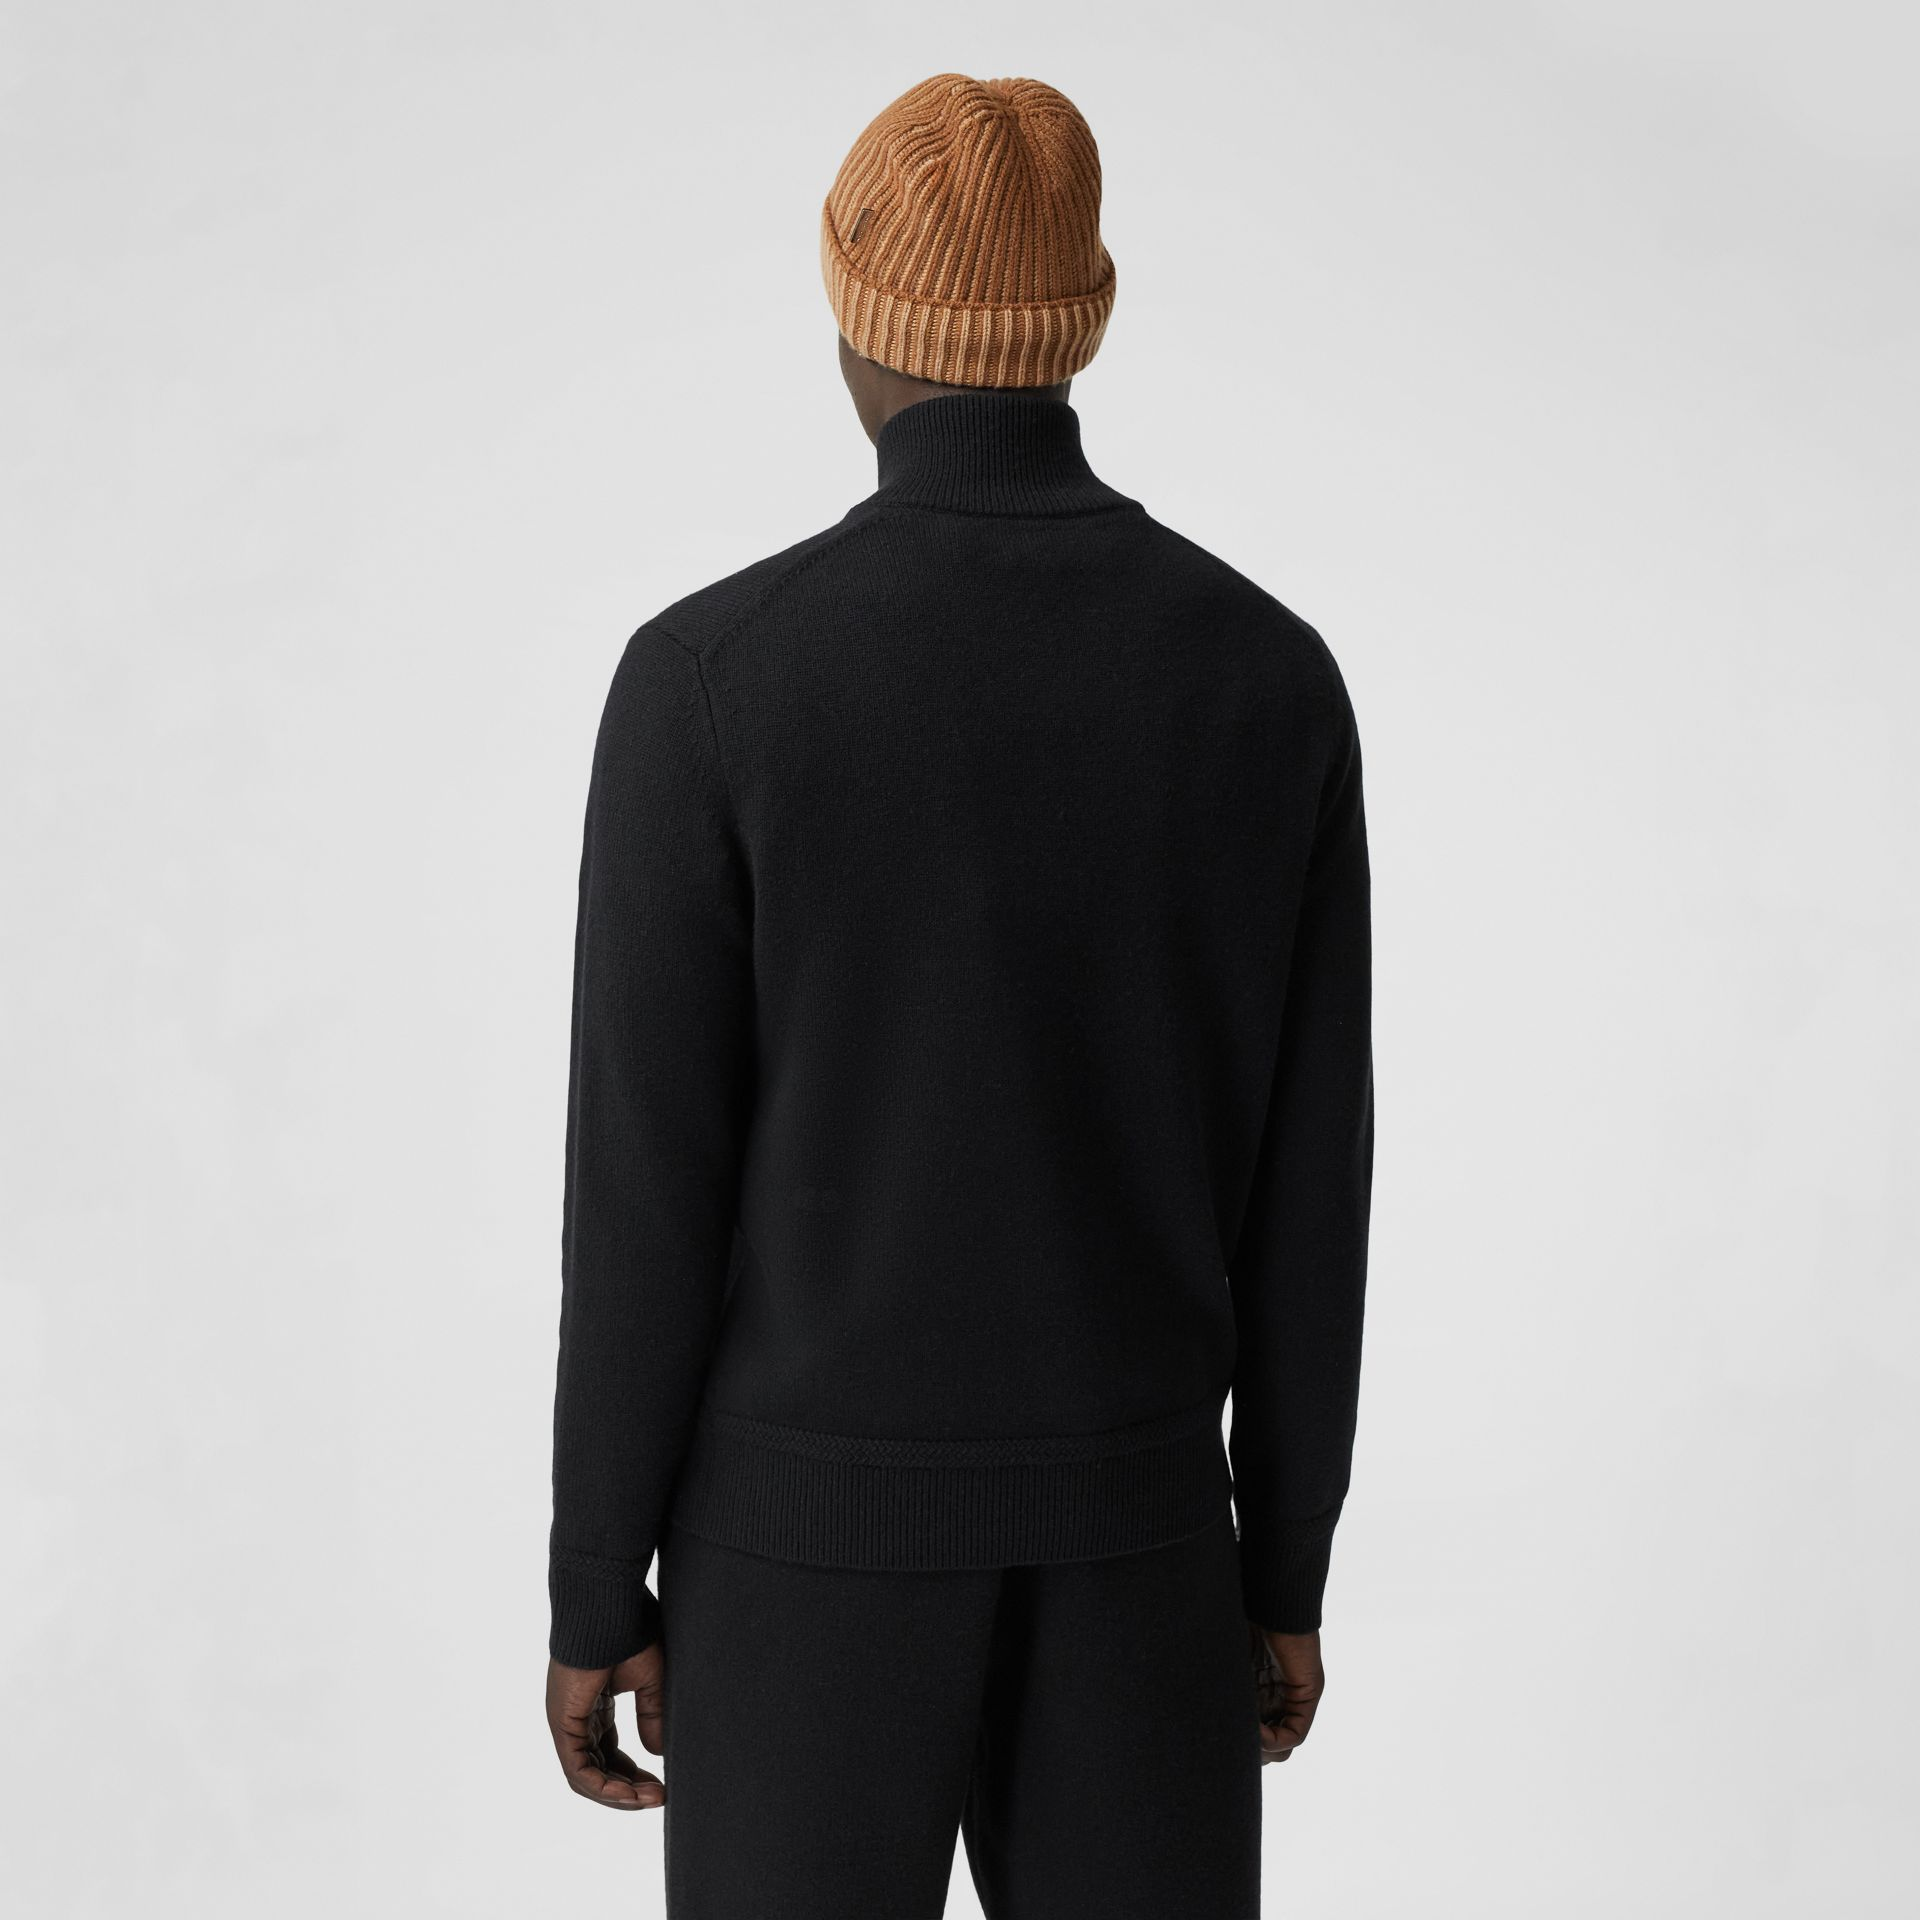 Monogram Motif Cashmere Funnel Neck Sweater in Black - Men | Burberry - gallery image 2